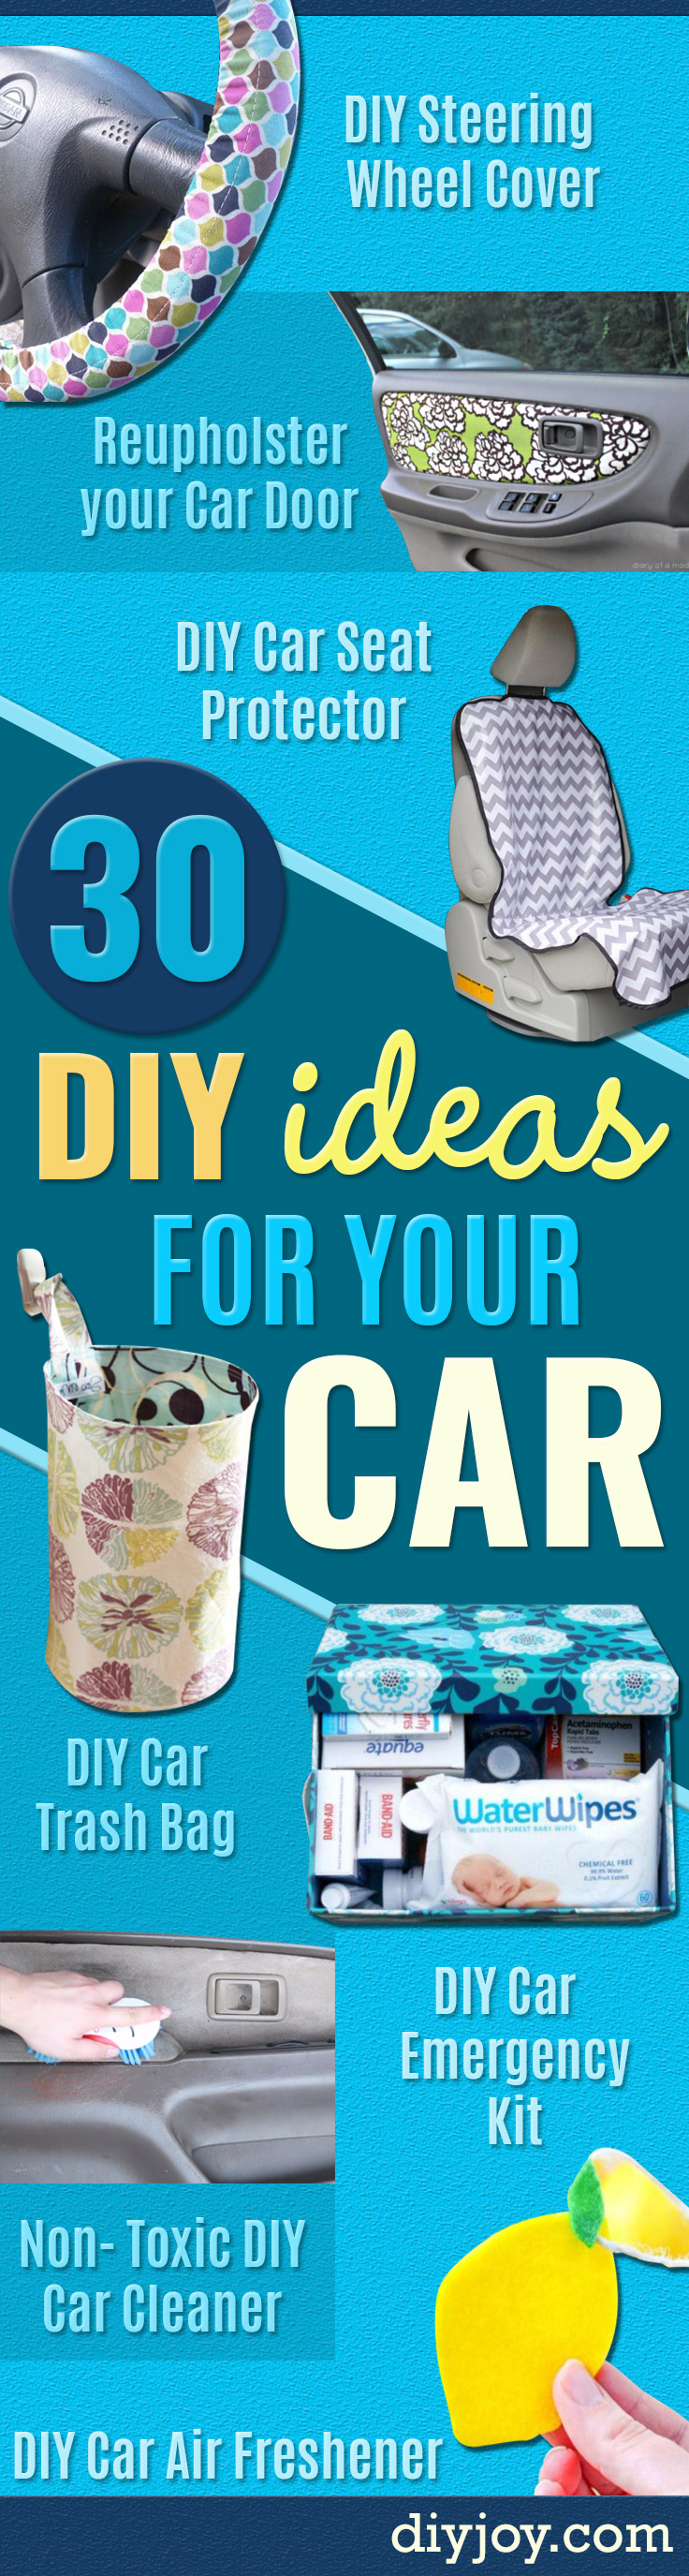 DIY Car Accessories And Ideas For Cars